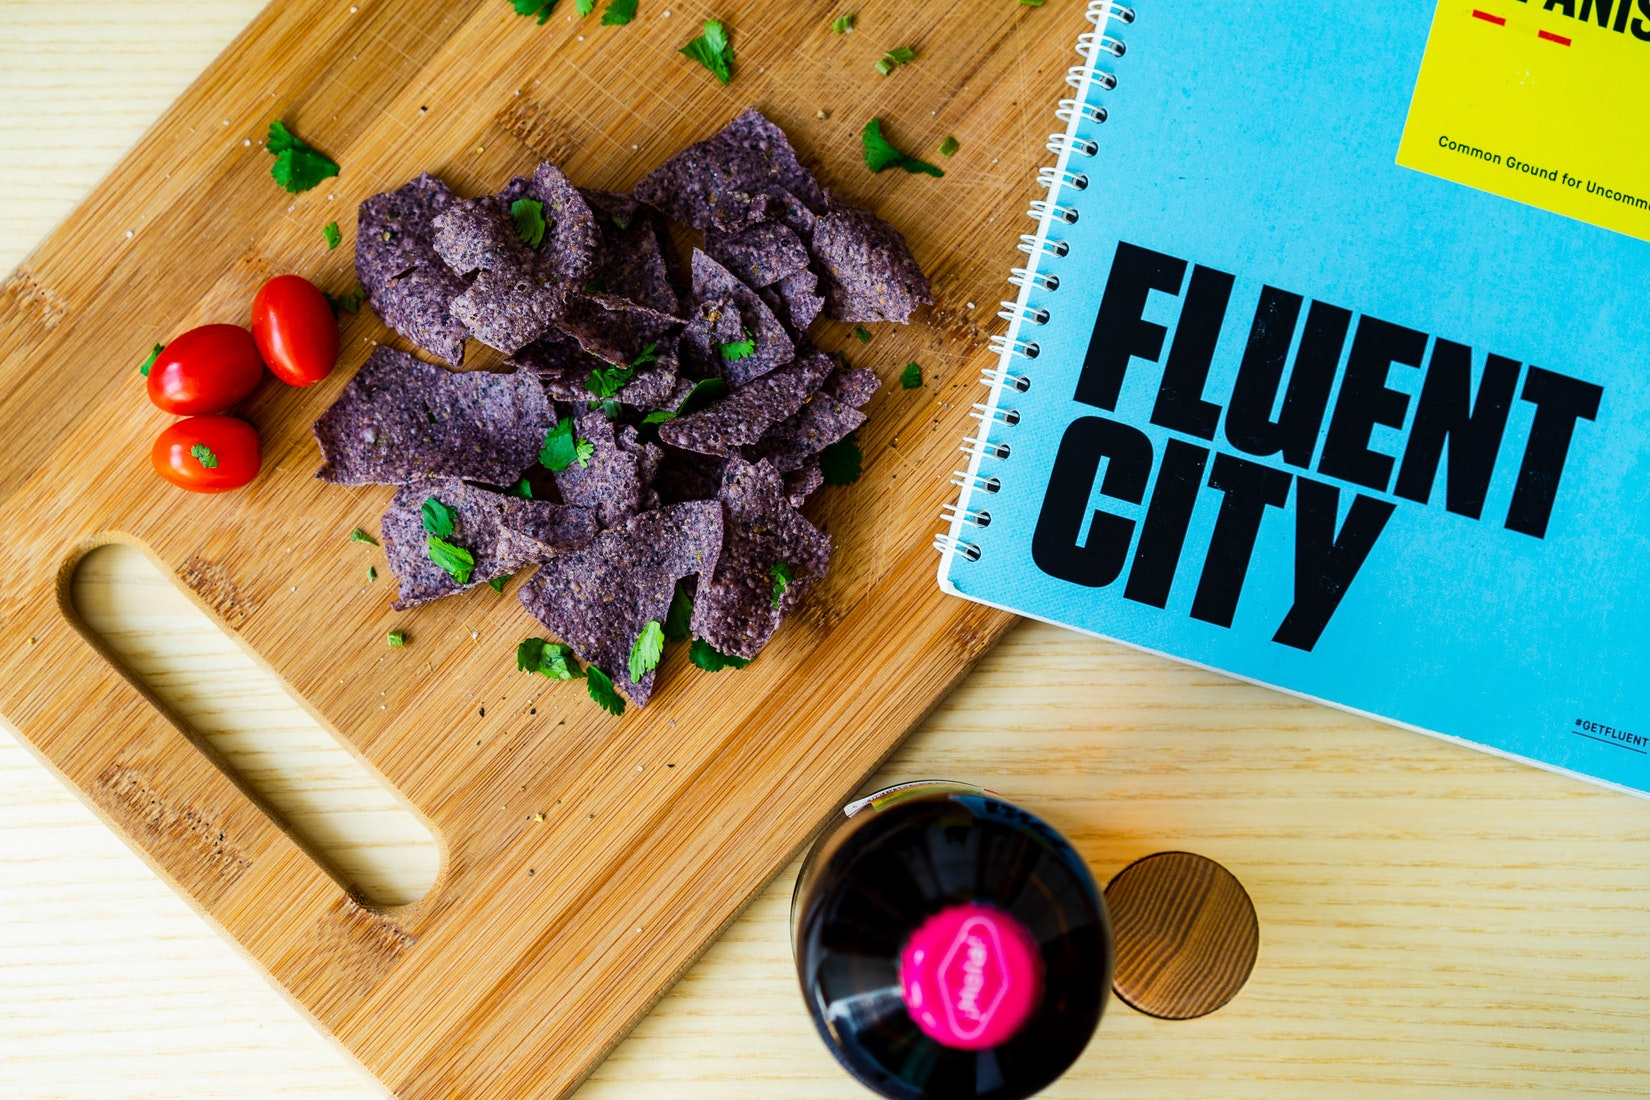 Fluent City book with chips and salsa